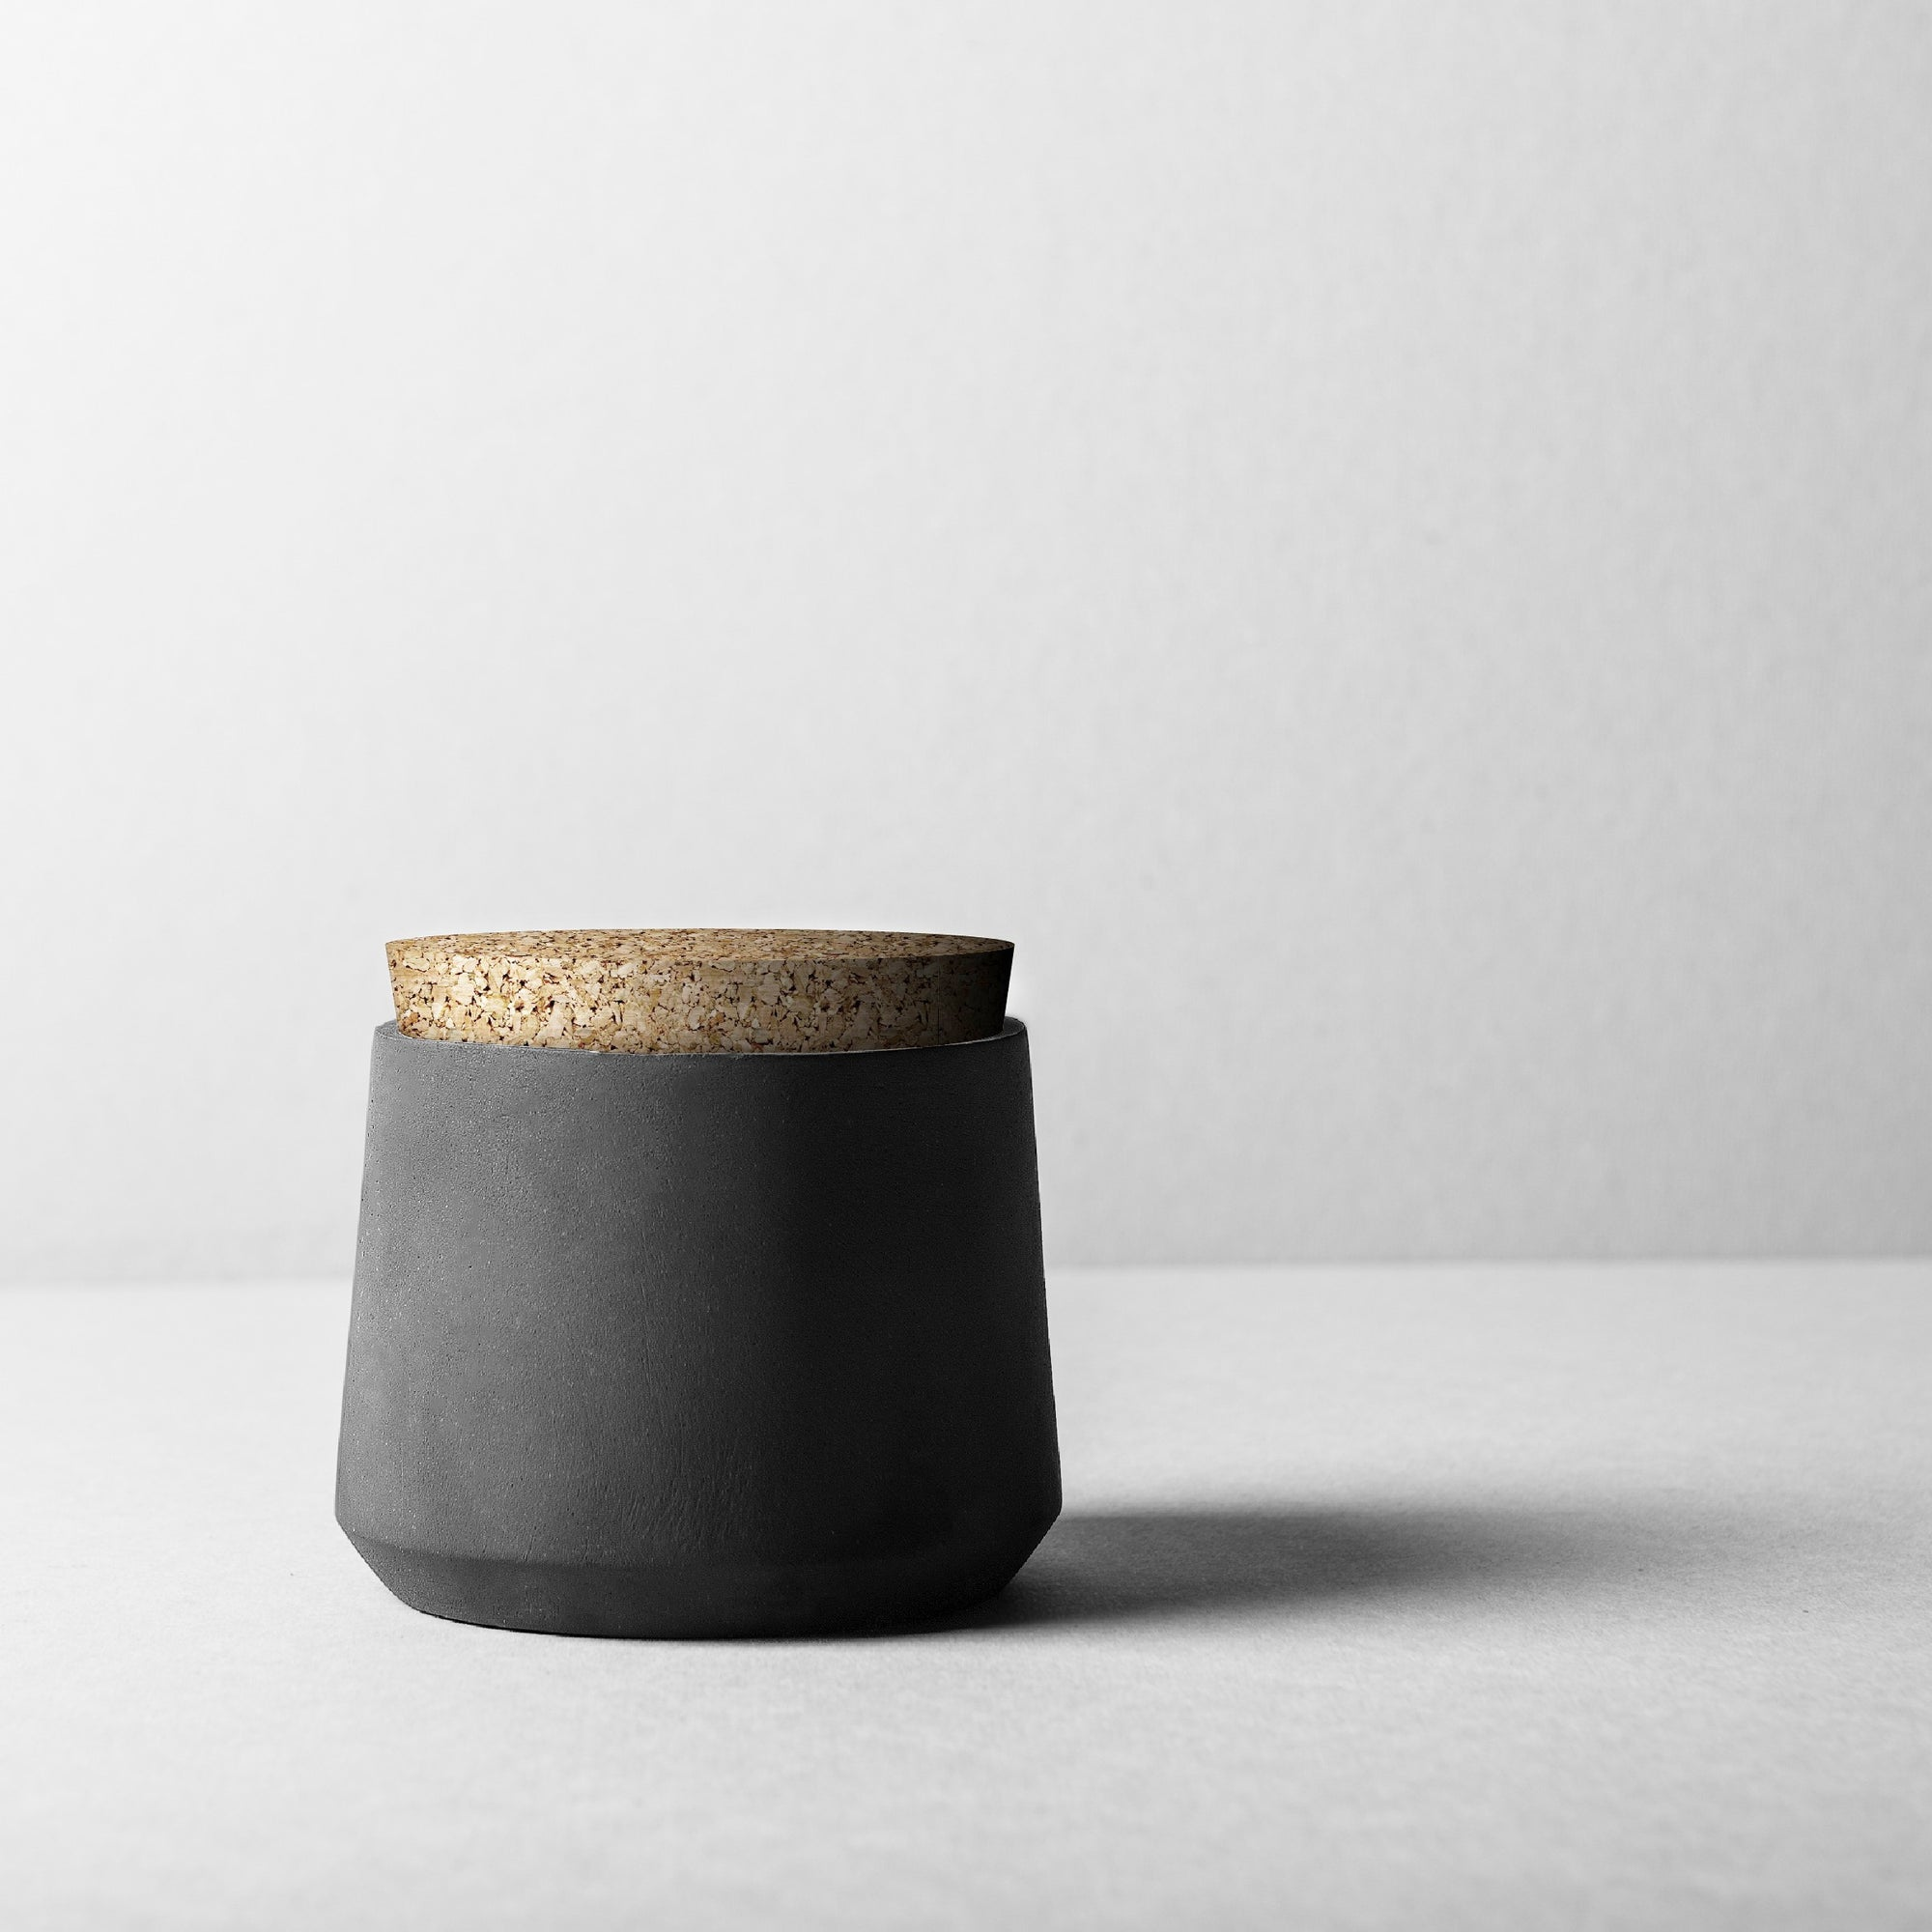 Rubble Interior Design Marketplace, Batoque Black Ceramic Pot Cannister by Bisarro Ceramics Designer